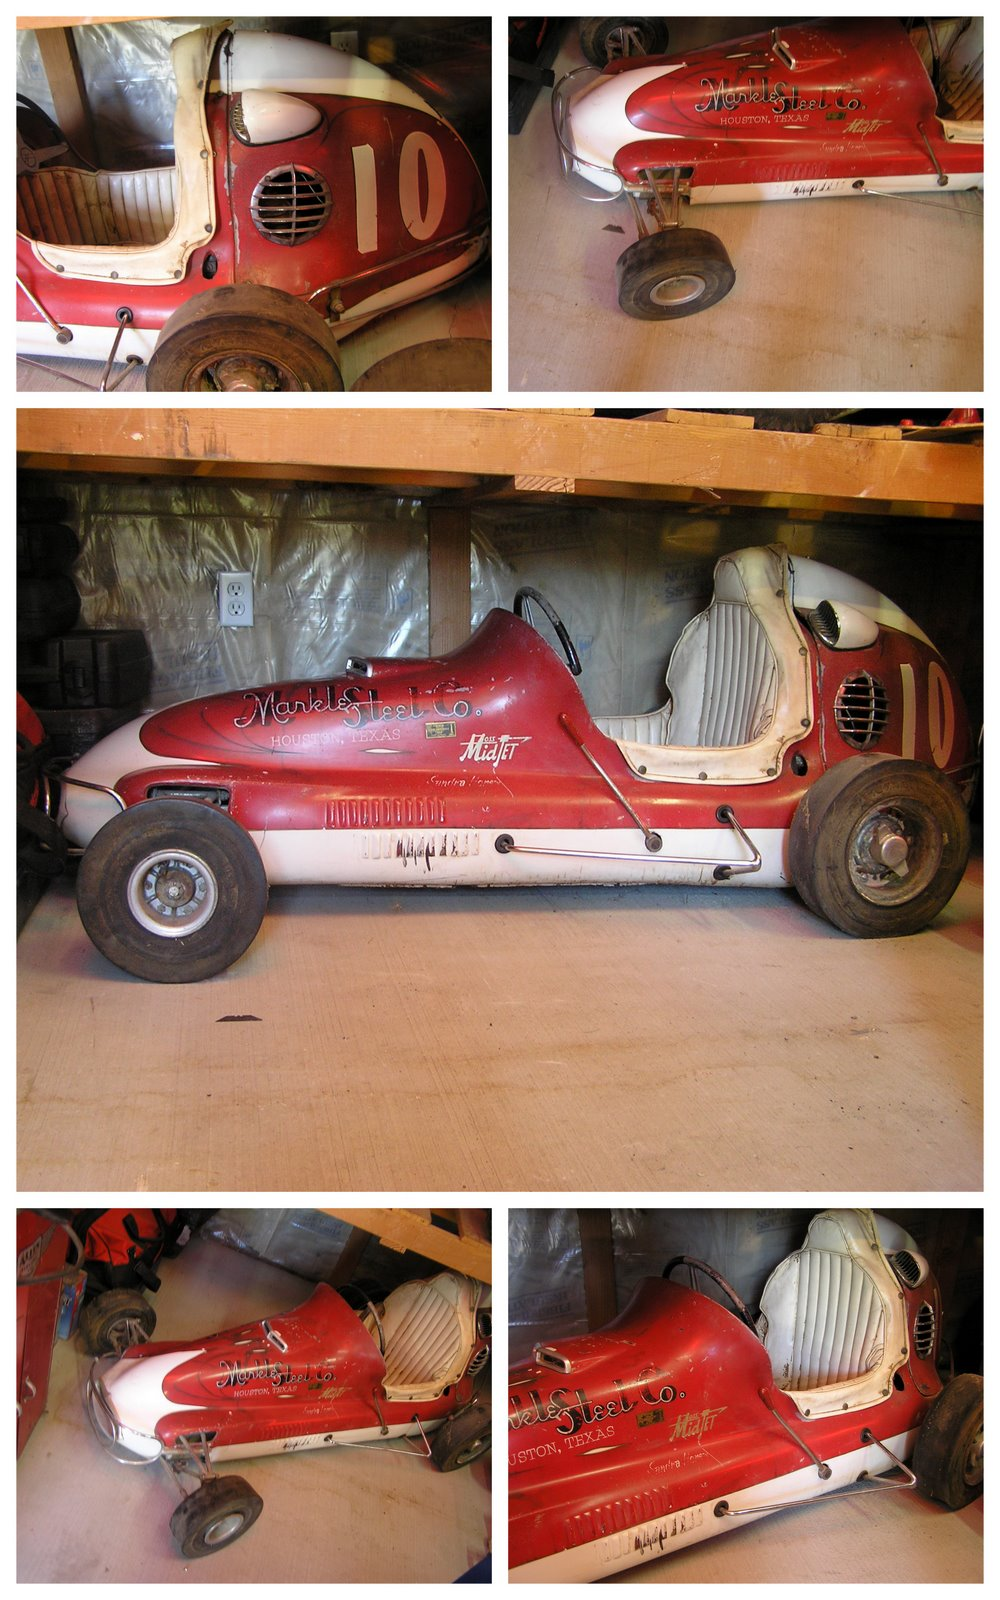 Oval track midget for sale